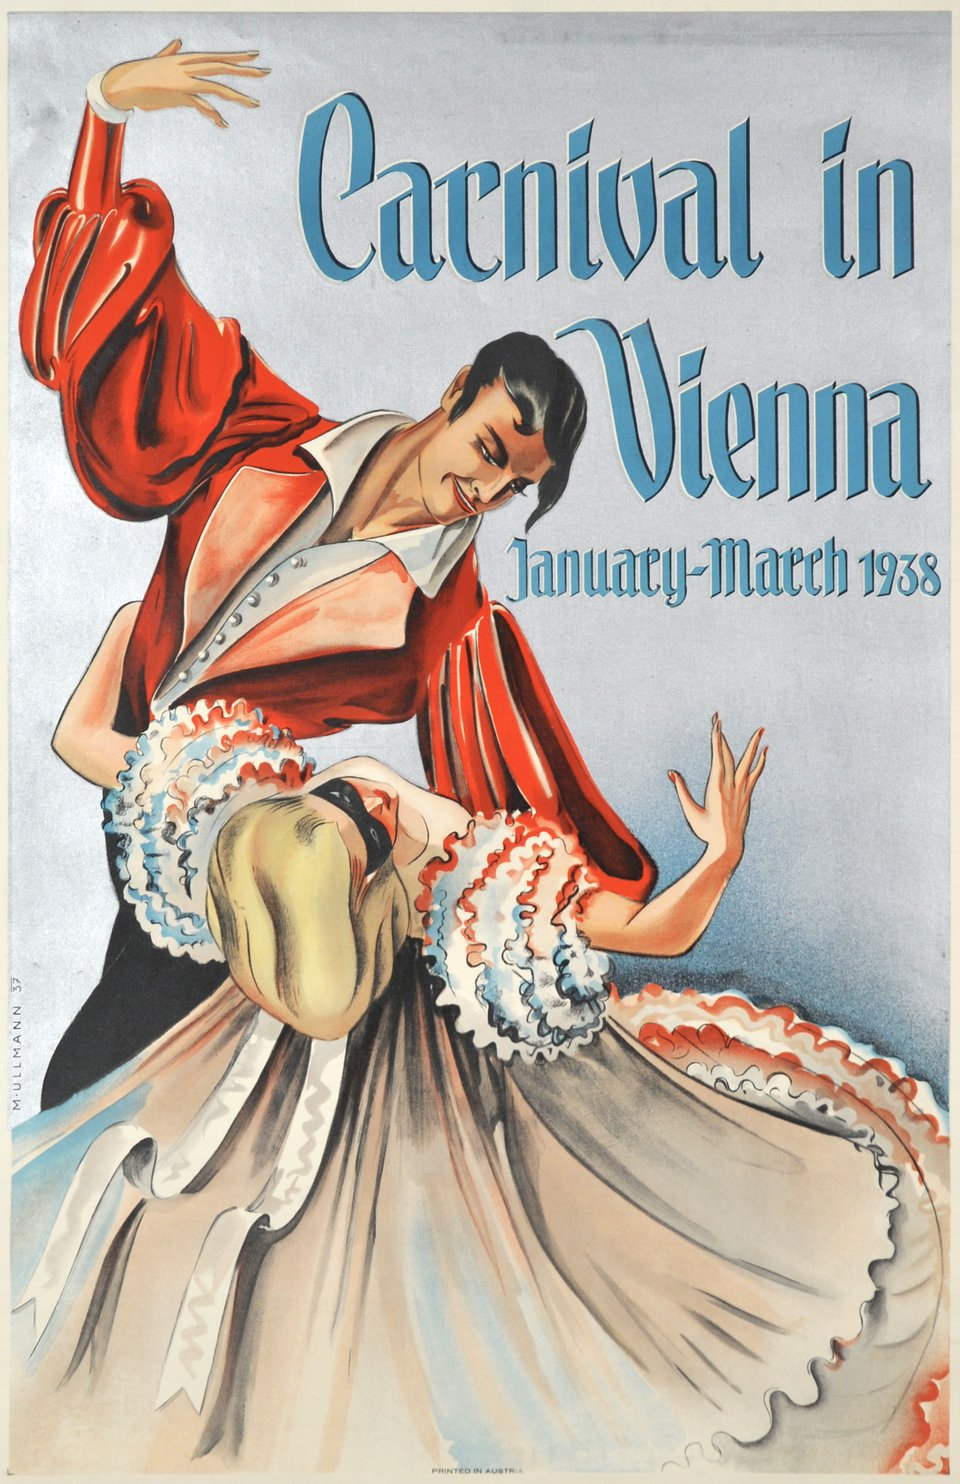 Carnival in Vienna, January-March 1938 – Affiche ancienne – Marianne ULLMANN – 1937